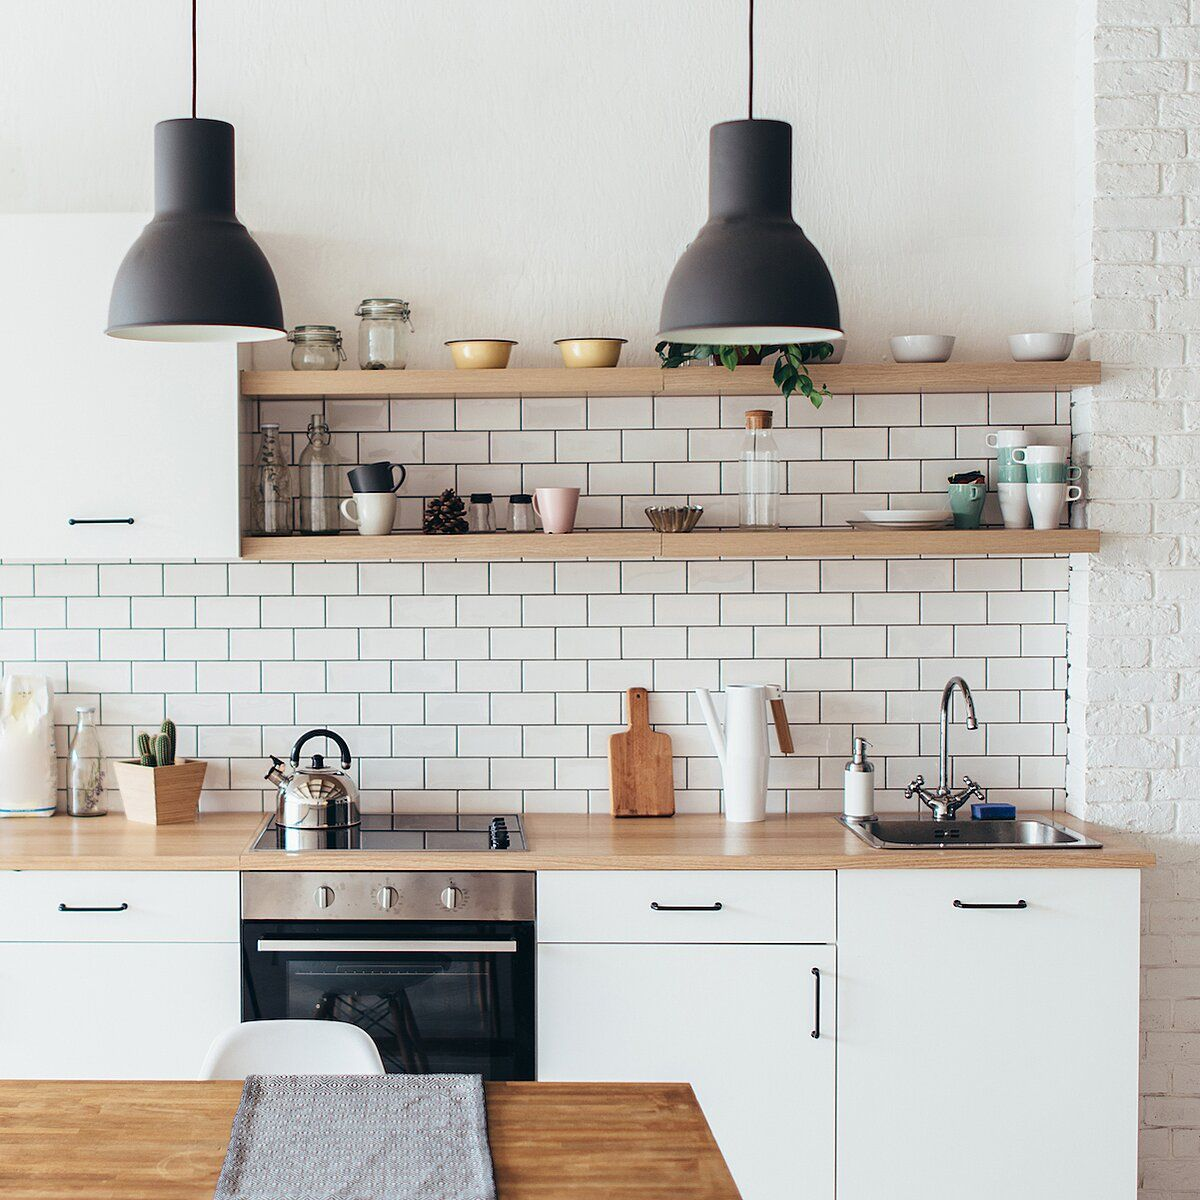 7 Colorful Kitchens That Will Inspire You to Pick Up a ...